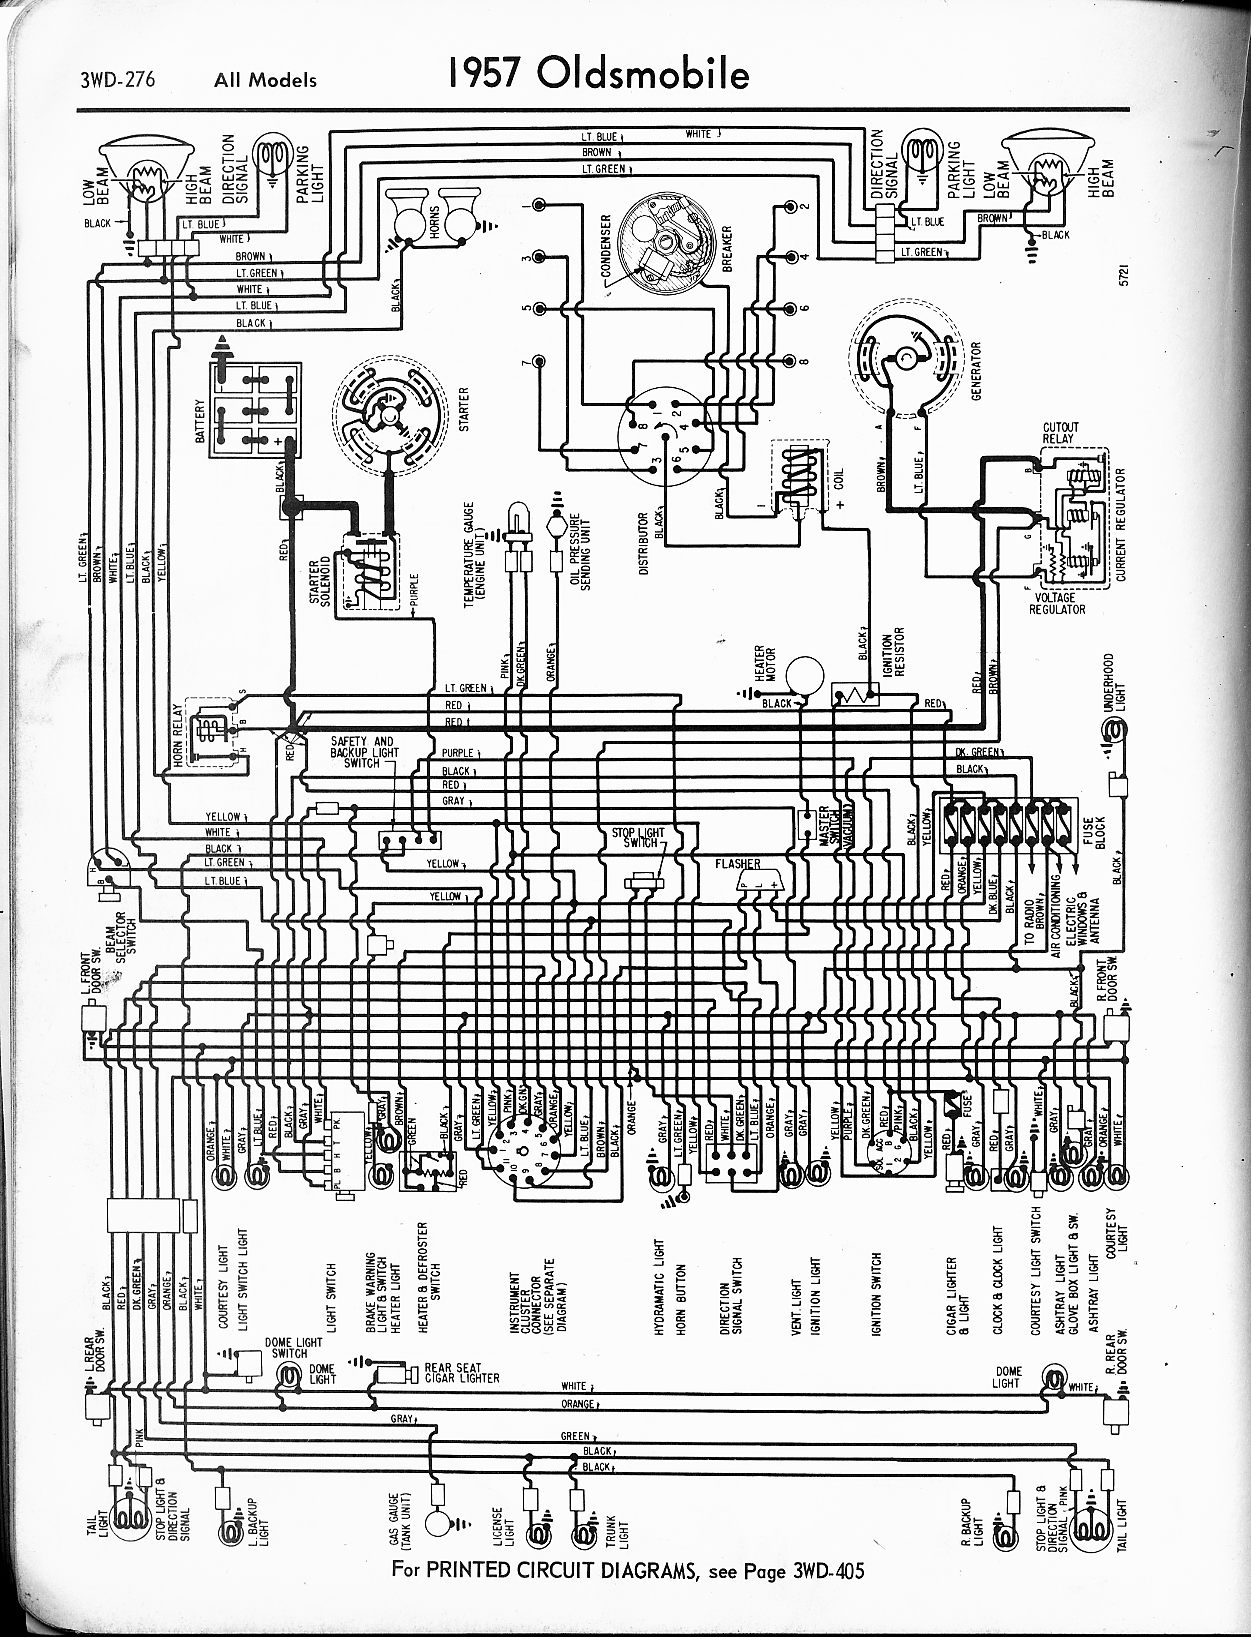 65 Cutl Wiring Harness - 7.9.asyaunited.de •  Olds Wiring Harness Diagram on 65 ford wiring diagram, 65 olds parts, 65 pontiac wiring diagram, 65 chevy wiring diagram,